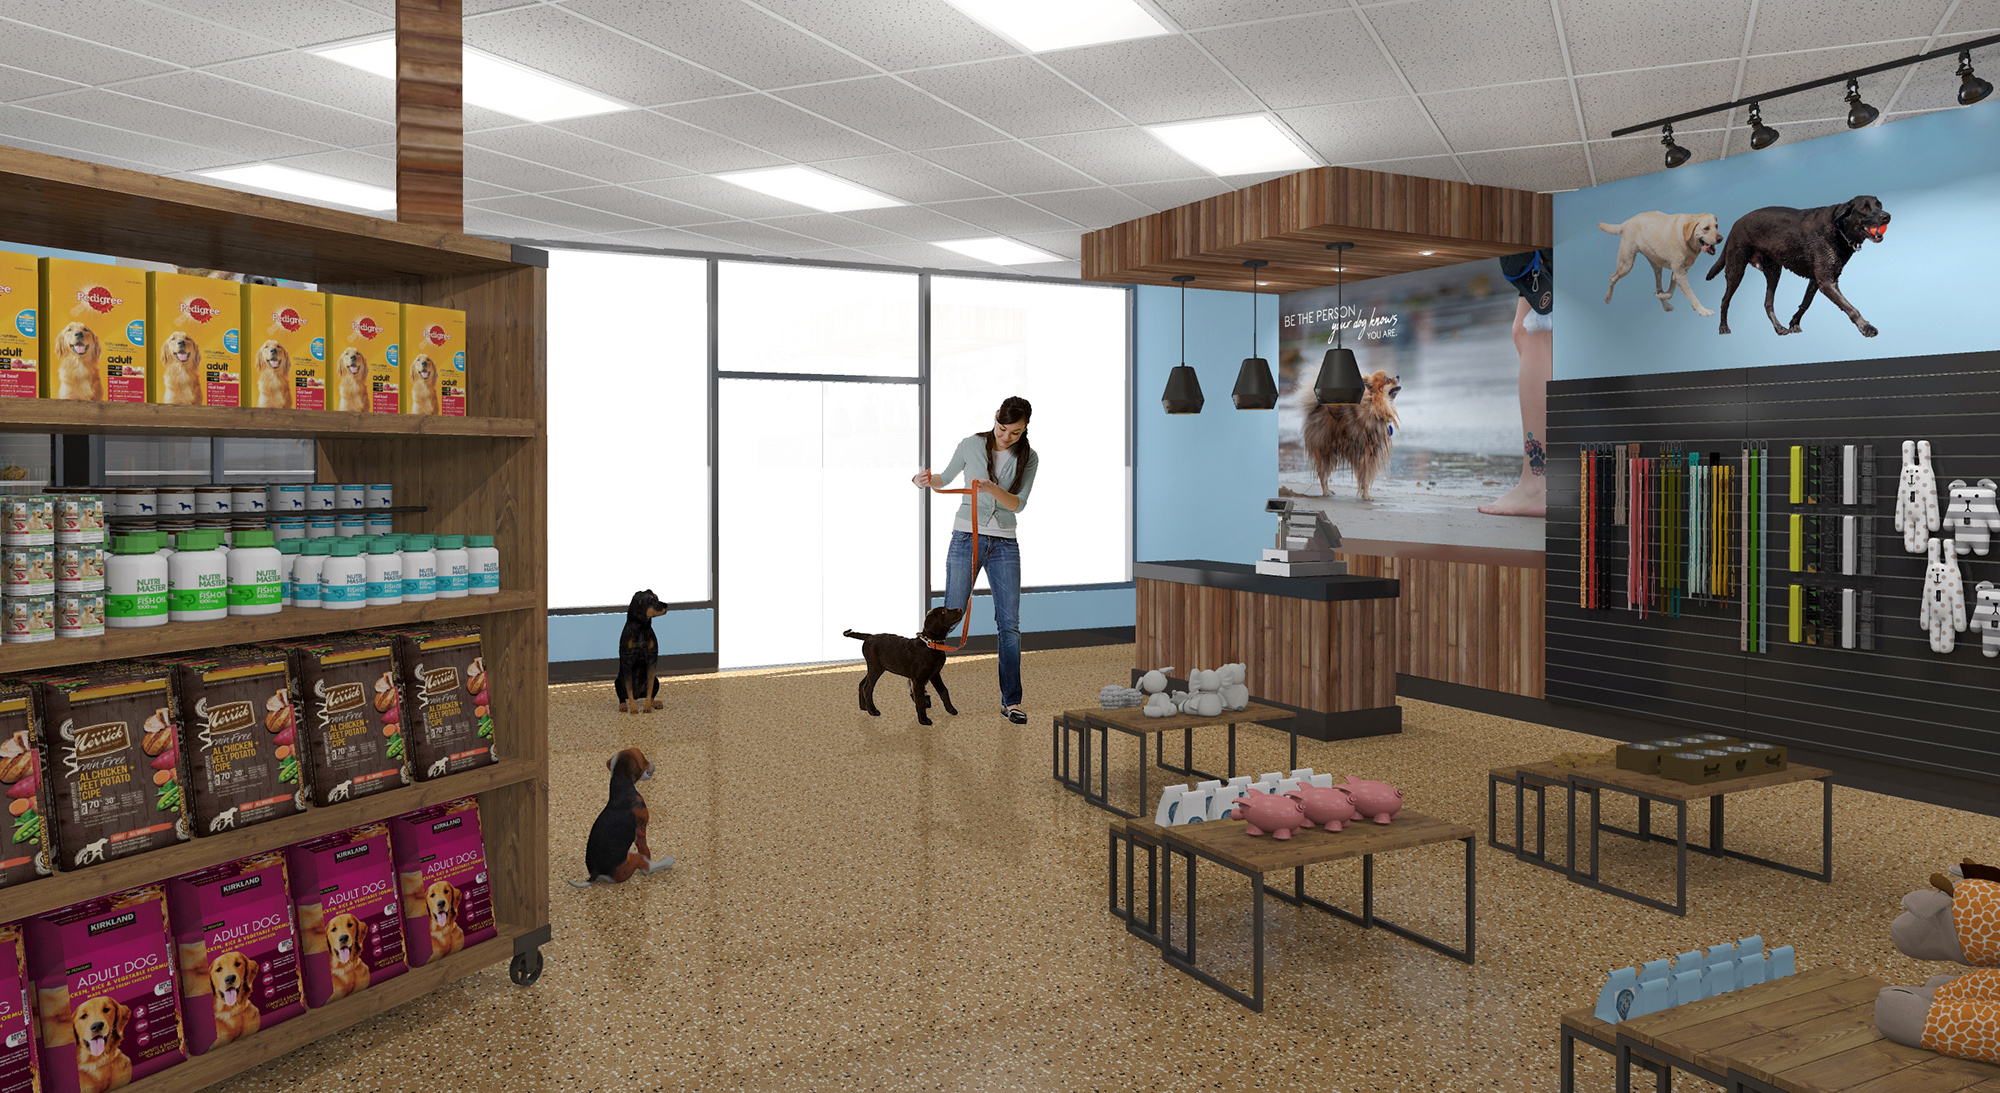 Our New Dogs Grooming Store Interior Design Is Cozy And Playful Mindful Design Consulting